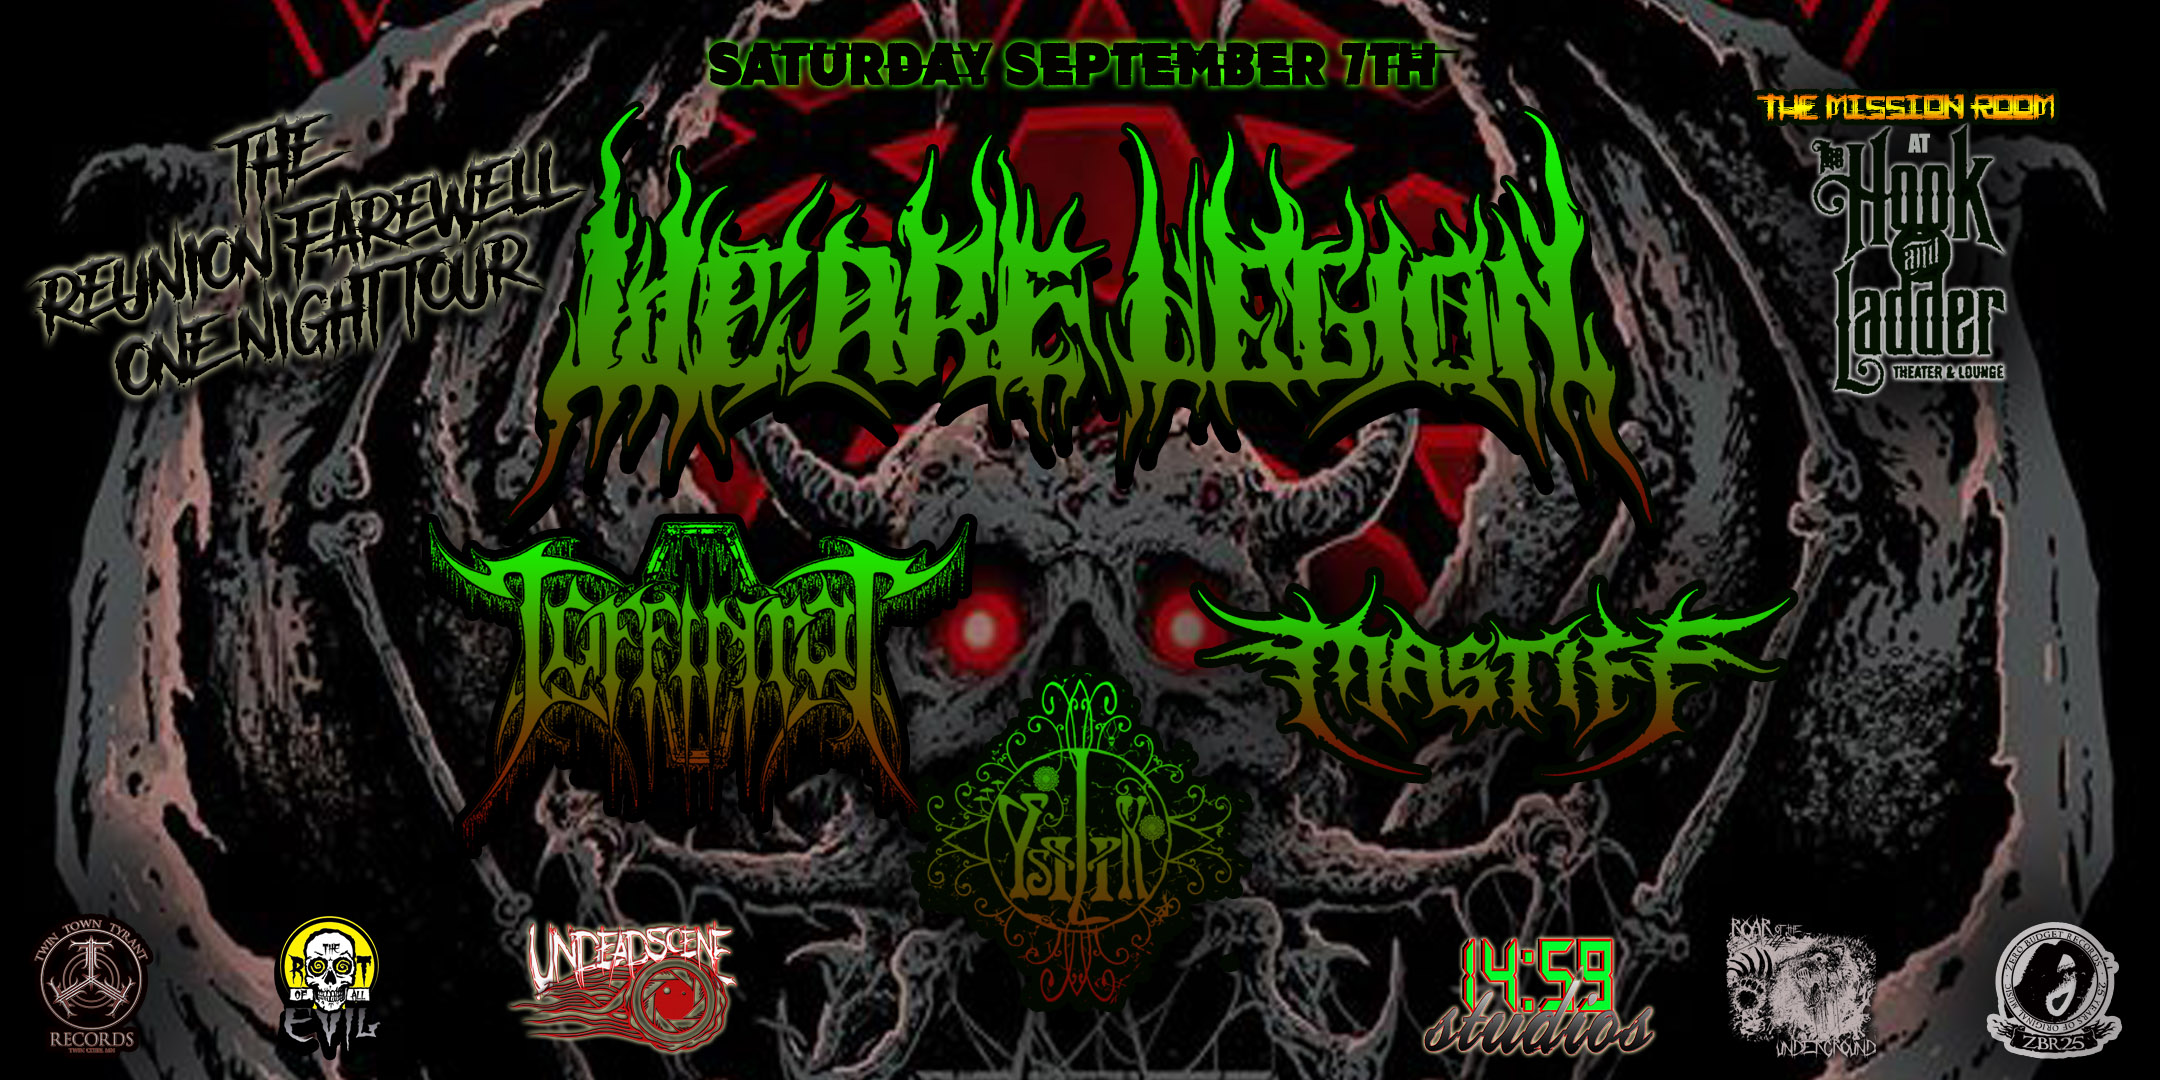 We Are Legion with Coffinrot, Mastiff, and Ysilik on Saturday, September 7 at The Hook and Ladder Mission Room